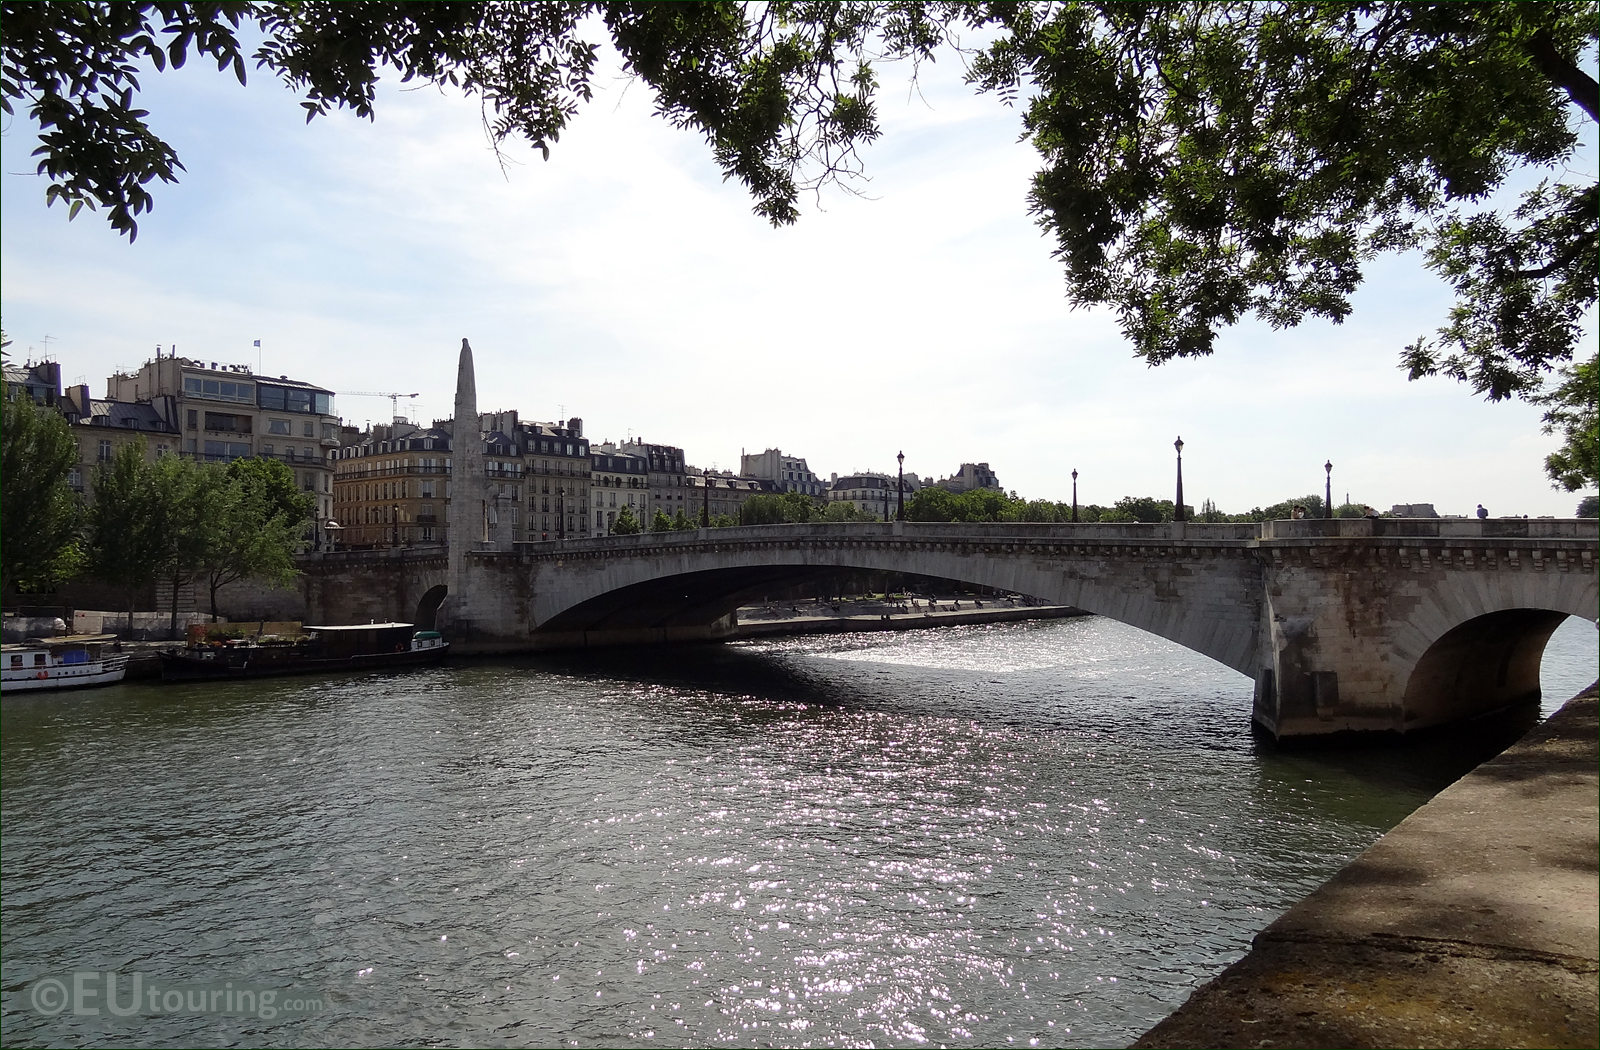 Hd Photographs Of Pont De La Tournelle In Paris France